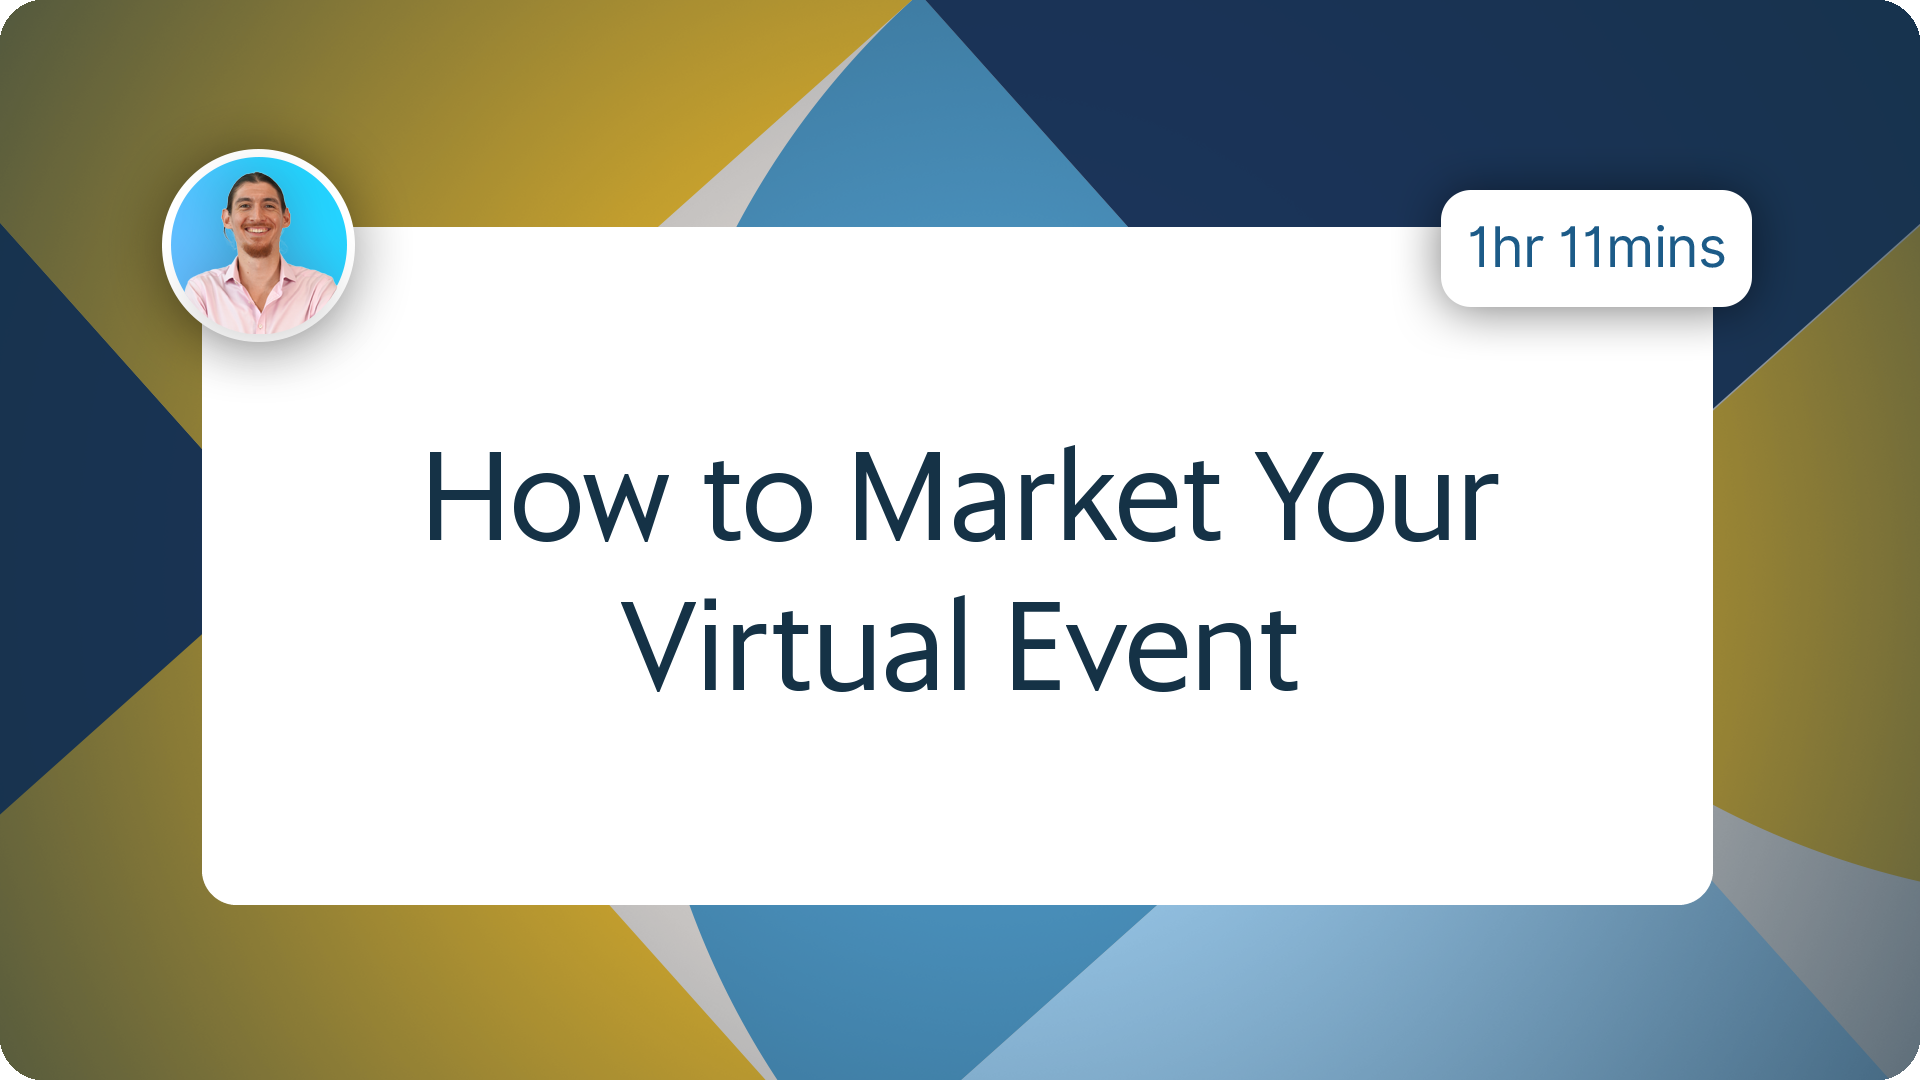 How to Market Your Virtual Event